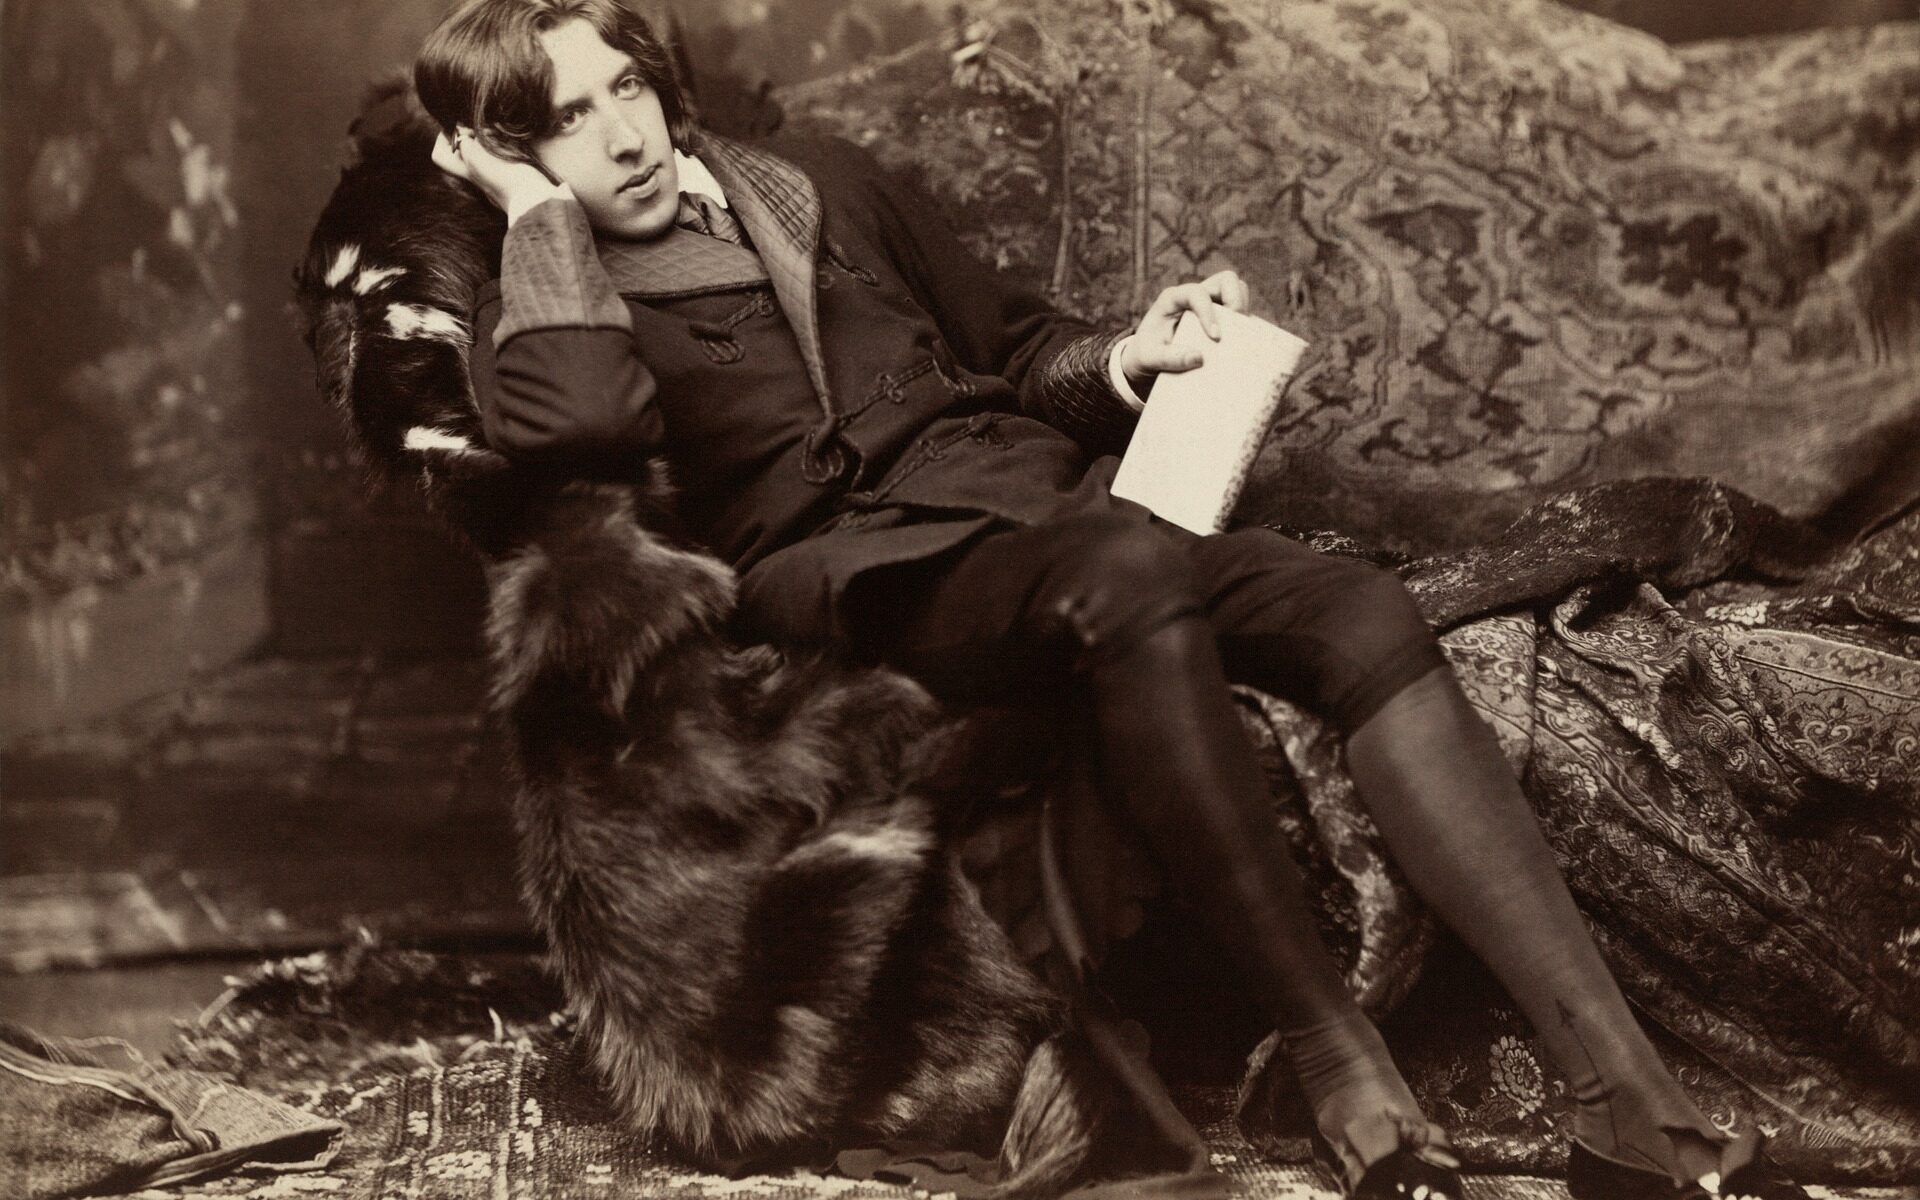 Oscar Wilde lounging on a sofa.